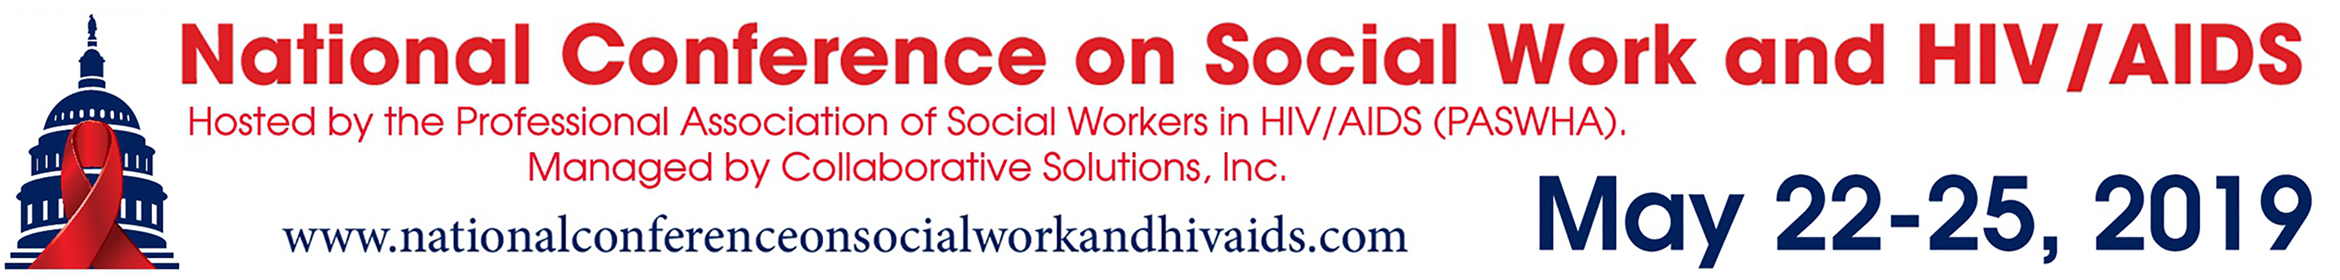 2019 National Conference on Social Work & HIV/AIDS Main banner